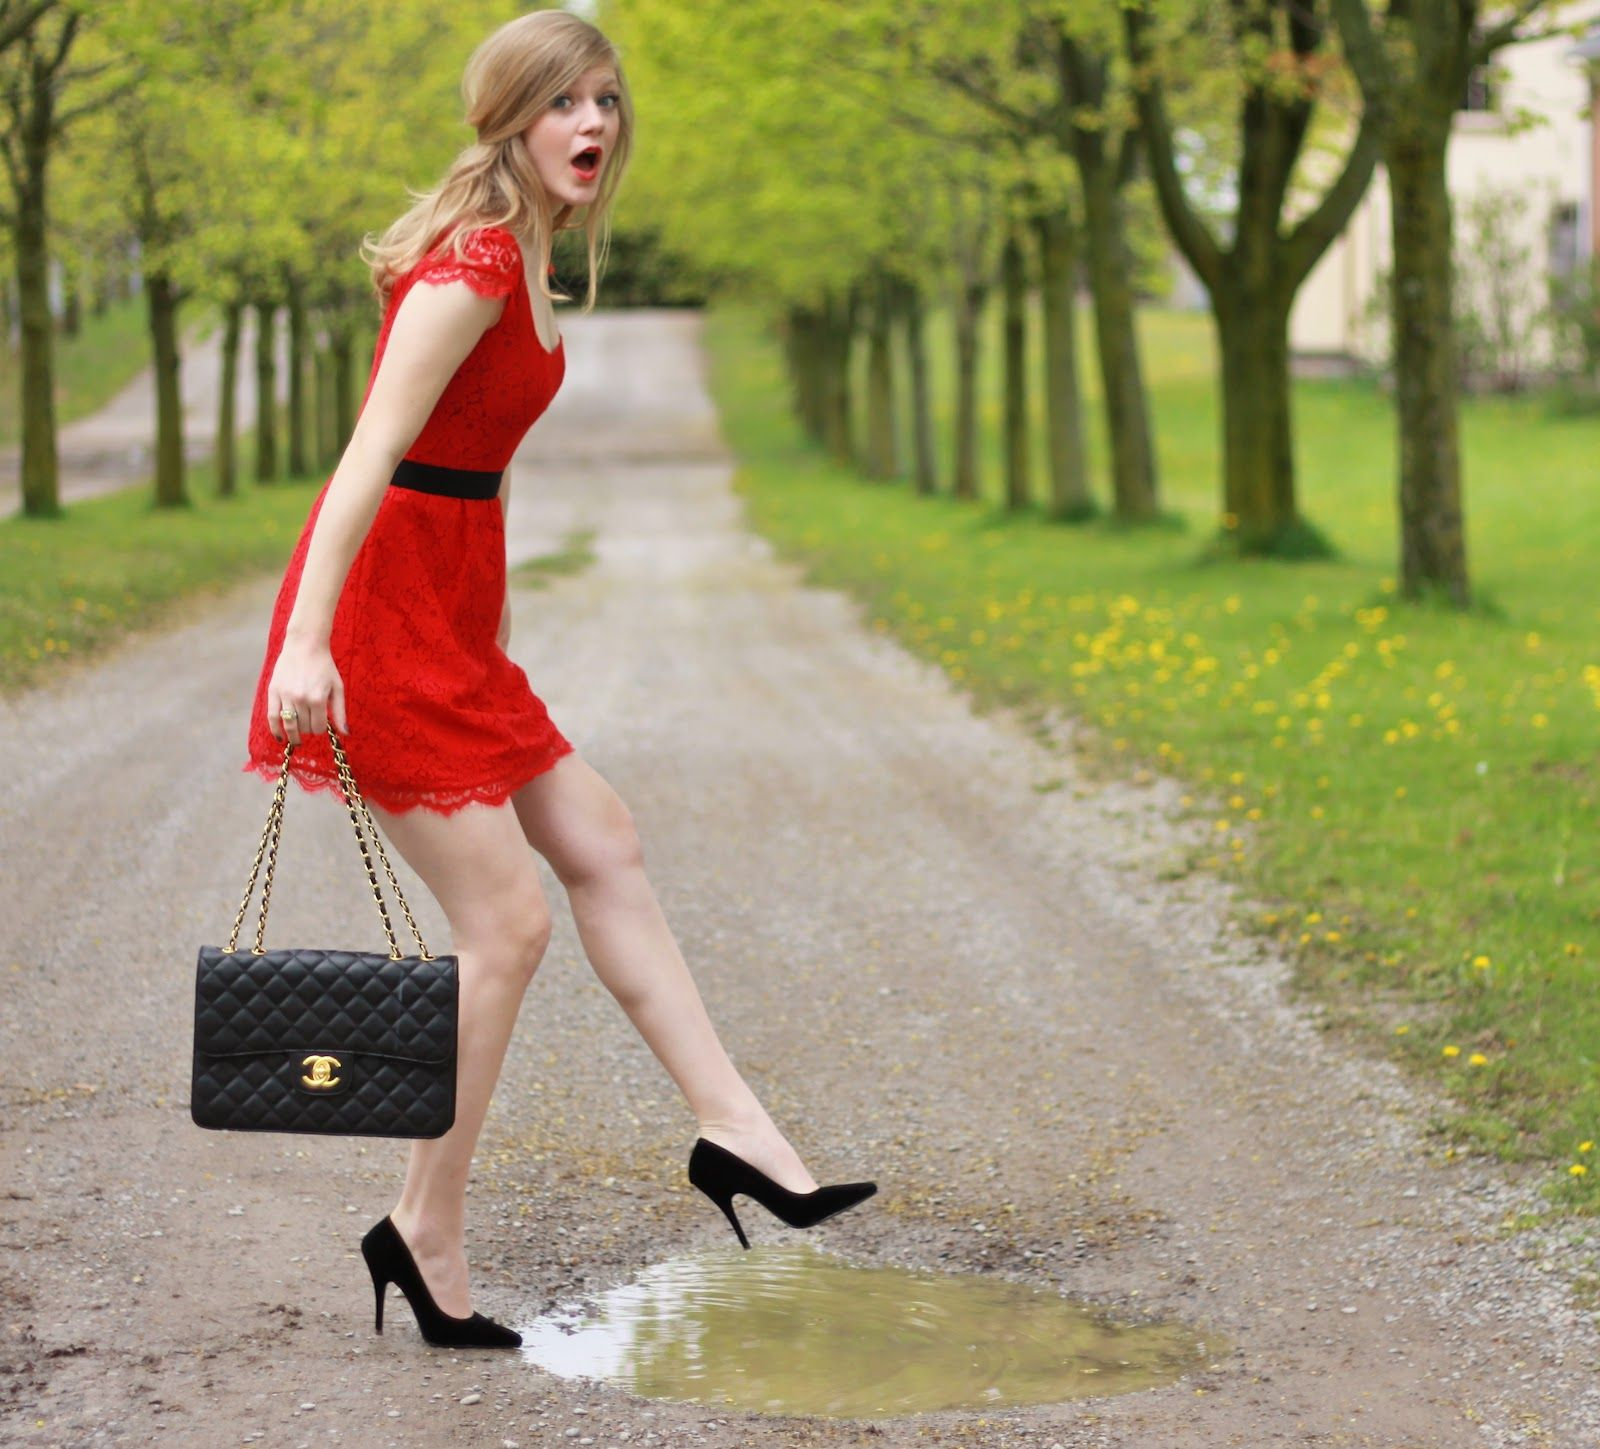 Wet_shoes (016) | Little red dress, Red lace dress, Pretty ...